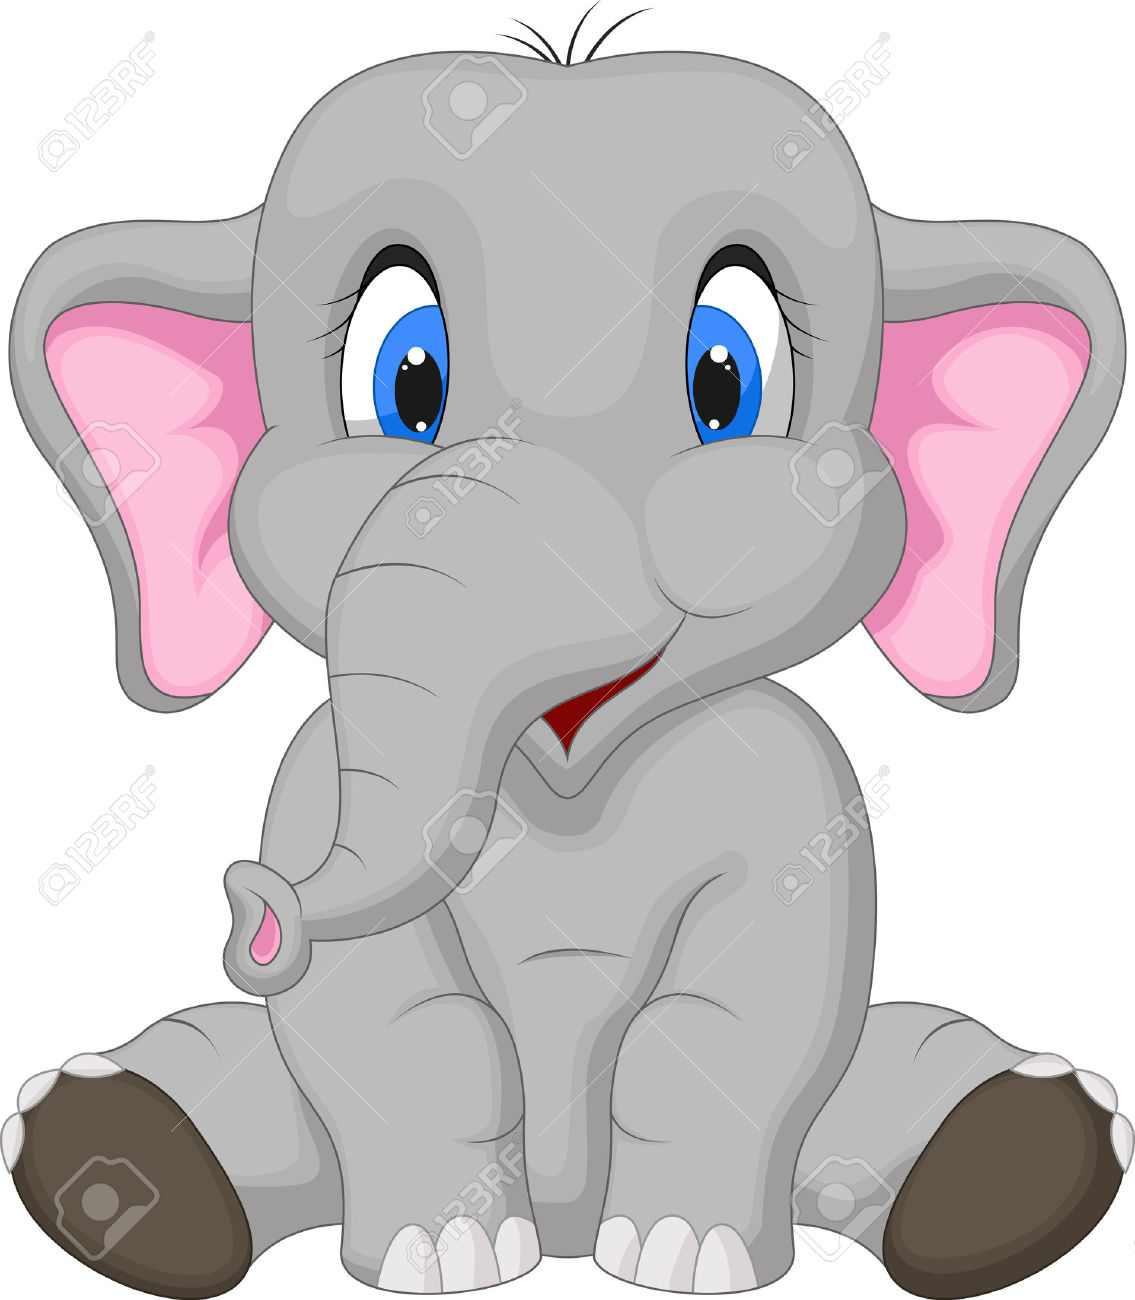 6,979 Baby Elephant Stock Vector Illustration And Royalty Free.